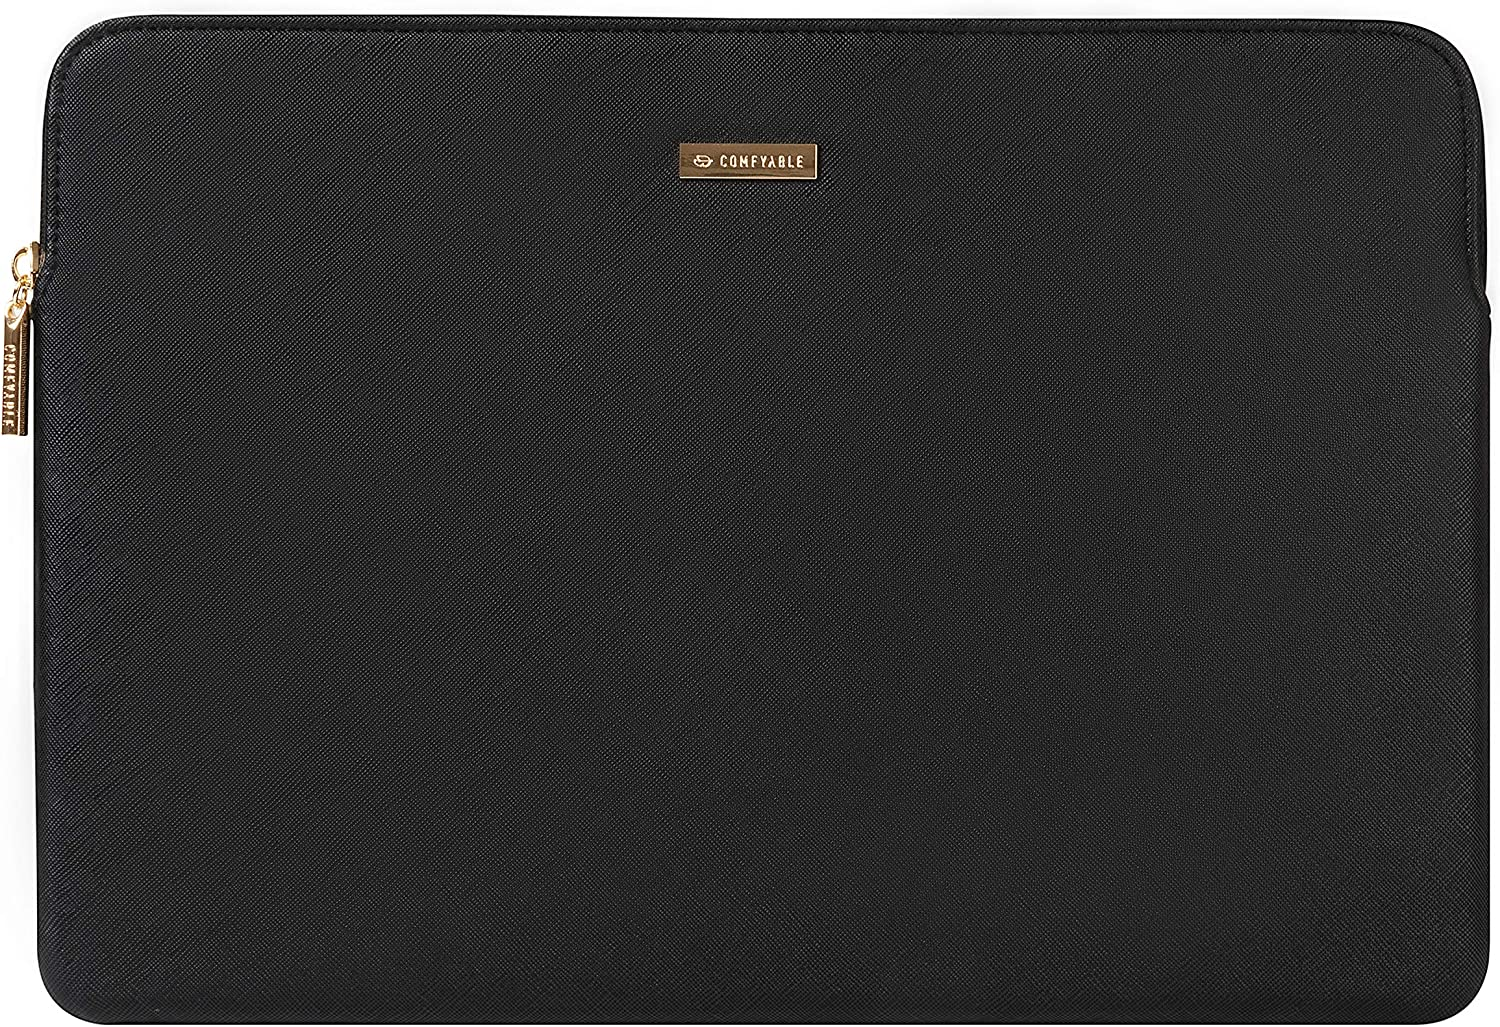 Comfyable Laptop Sleeve 13-13.3 inch for MacBook Pro & MacBook Air, PU Leather Waterproof Cover Notebook Case for Mac, Black